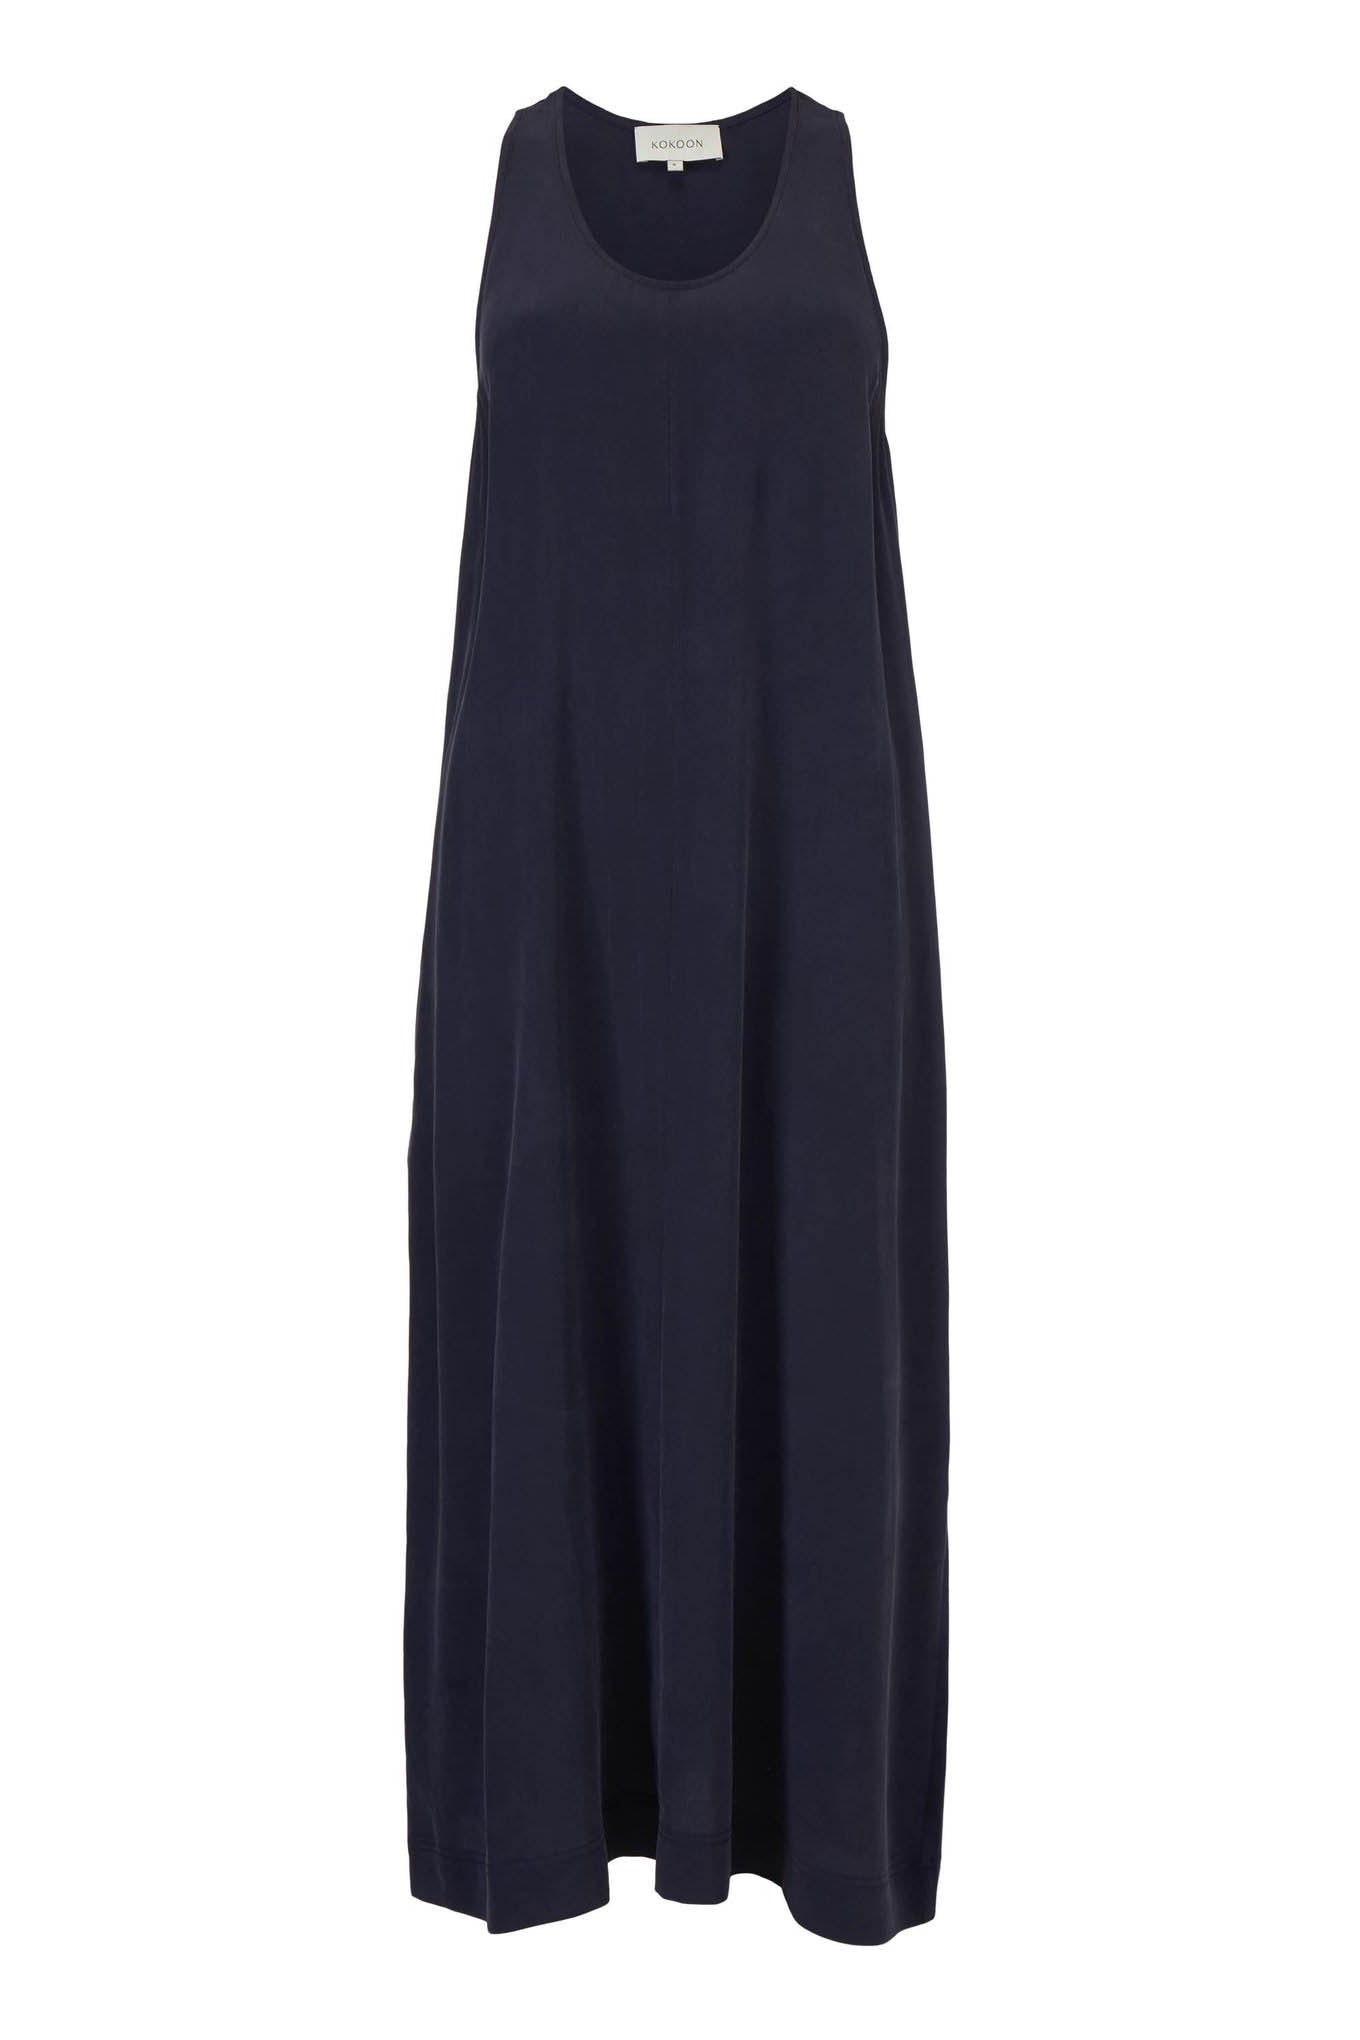 Patti Tank Dress - Navy